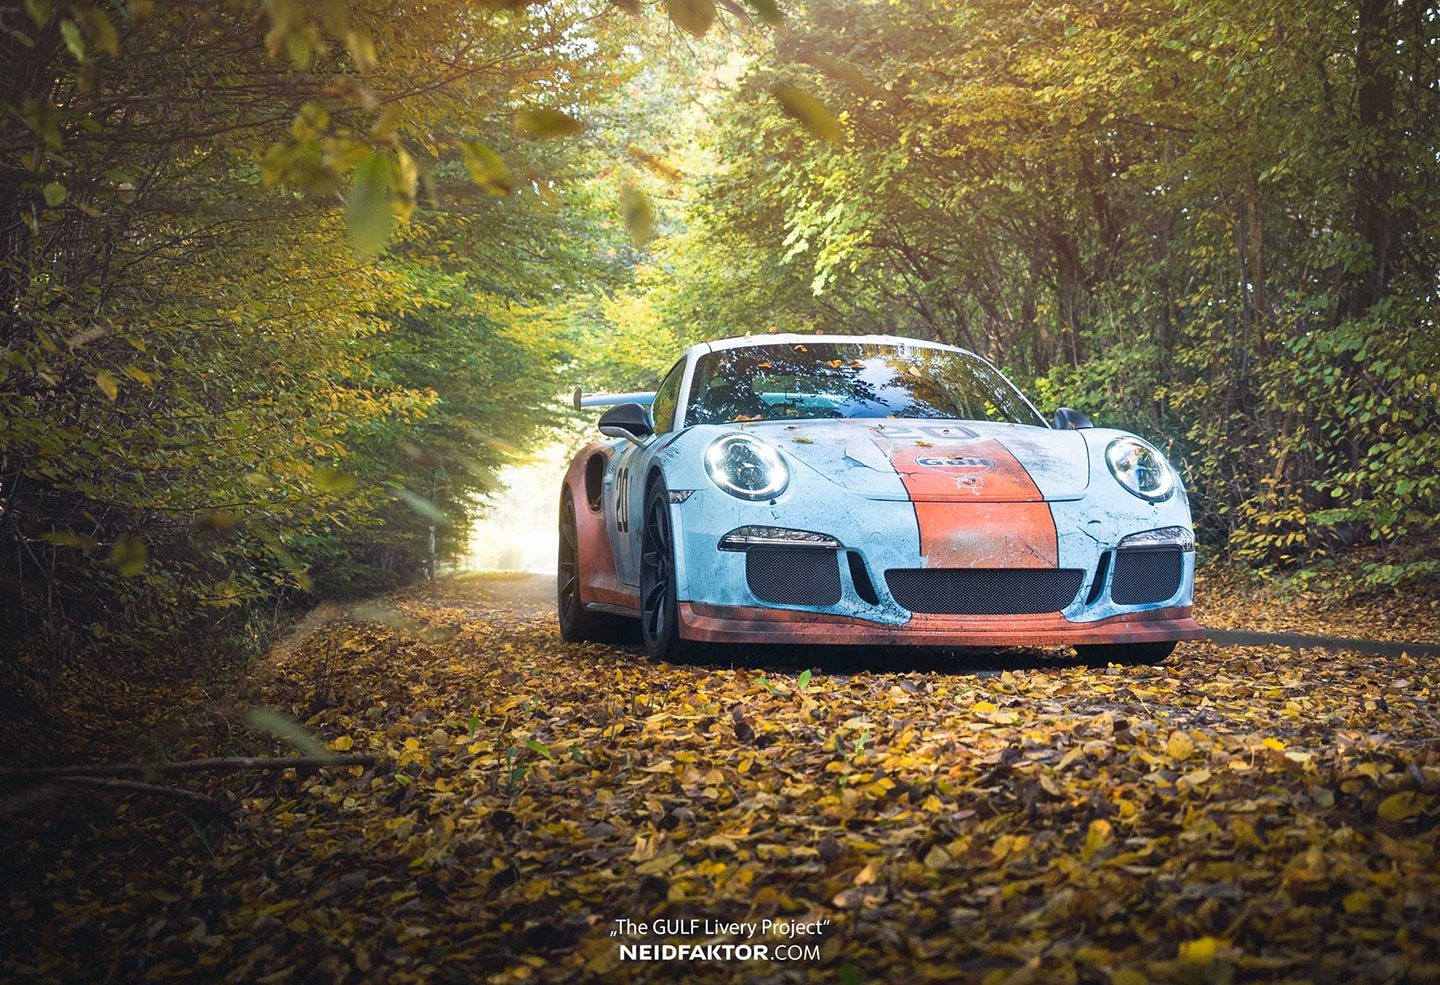 Cayman Gt4 Rs >> Weathered Gulf Livery Porsche GT3RS | Skepple Inc